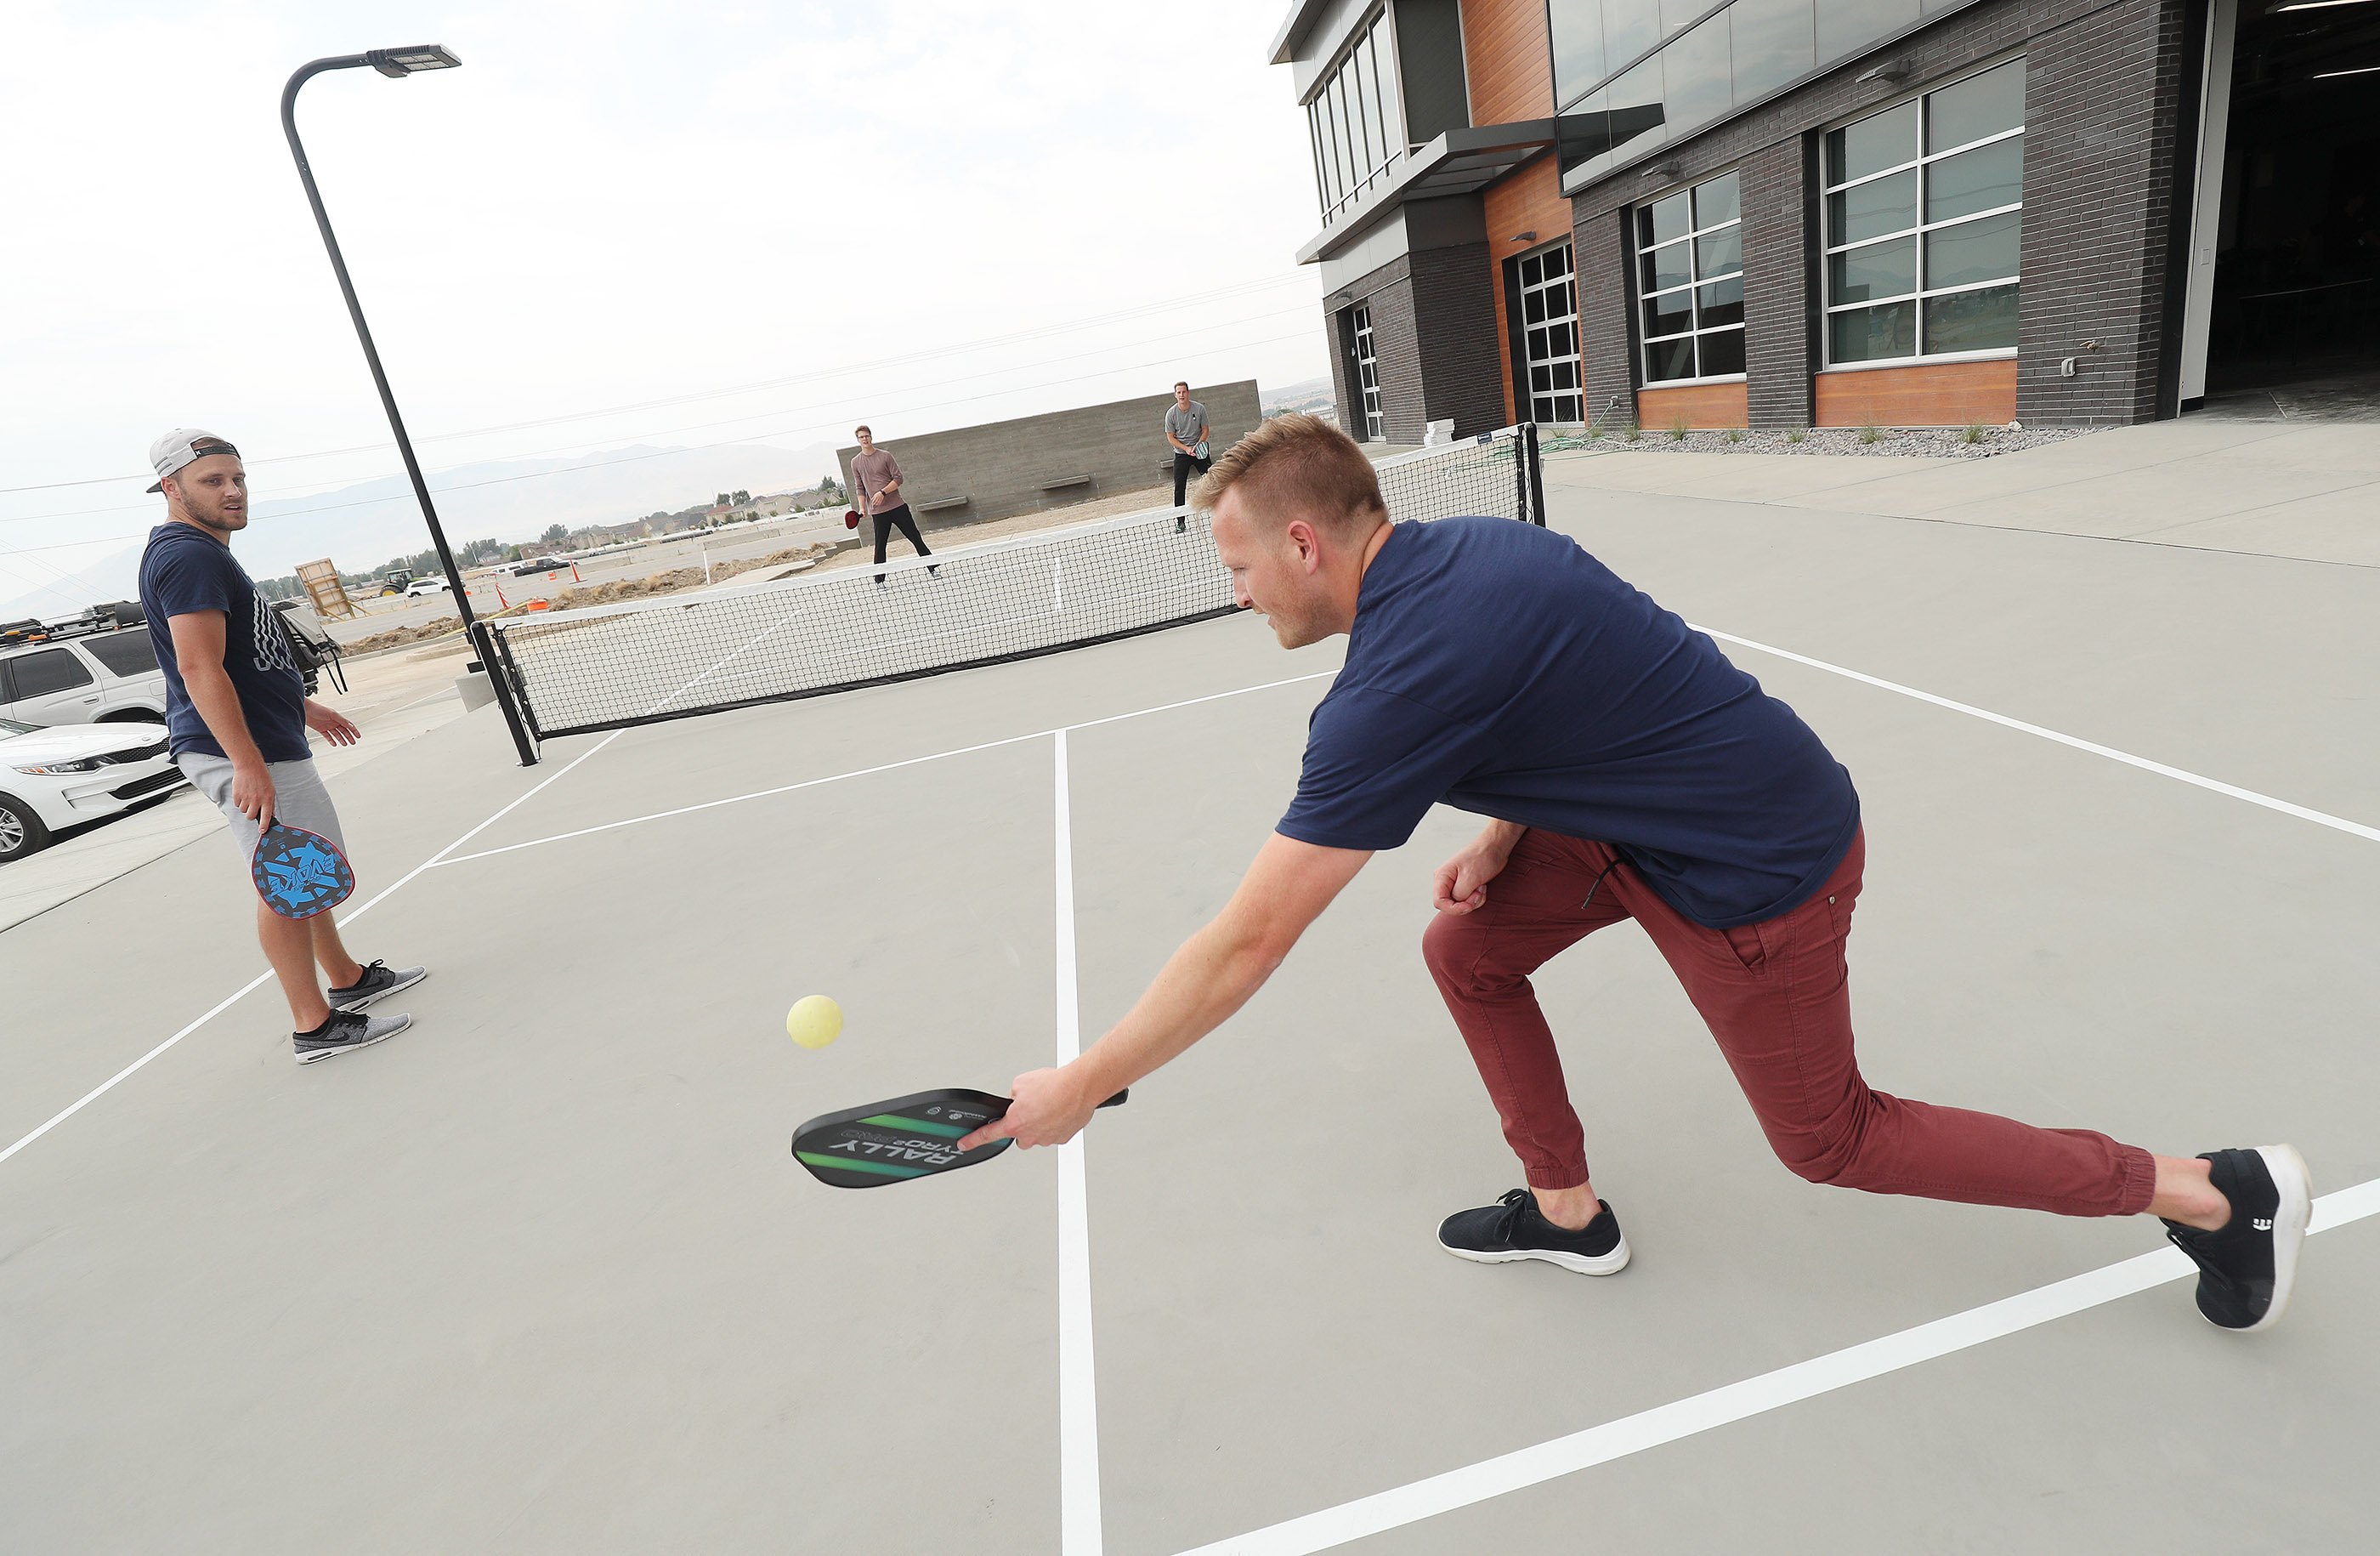 Regan Bushman hits the ball to a co-worker during a game of pickleball at Podium in Lehi.